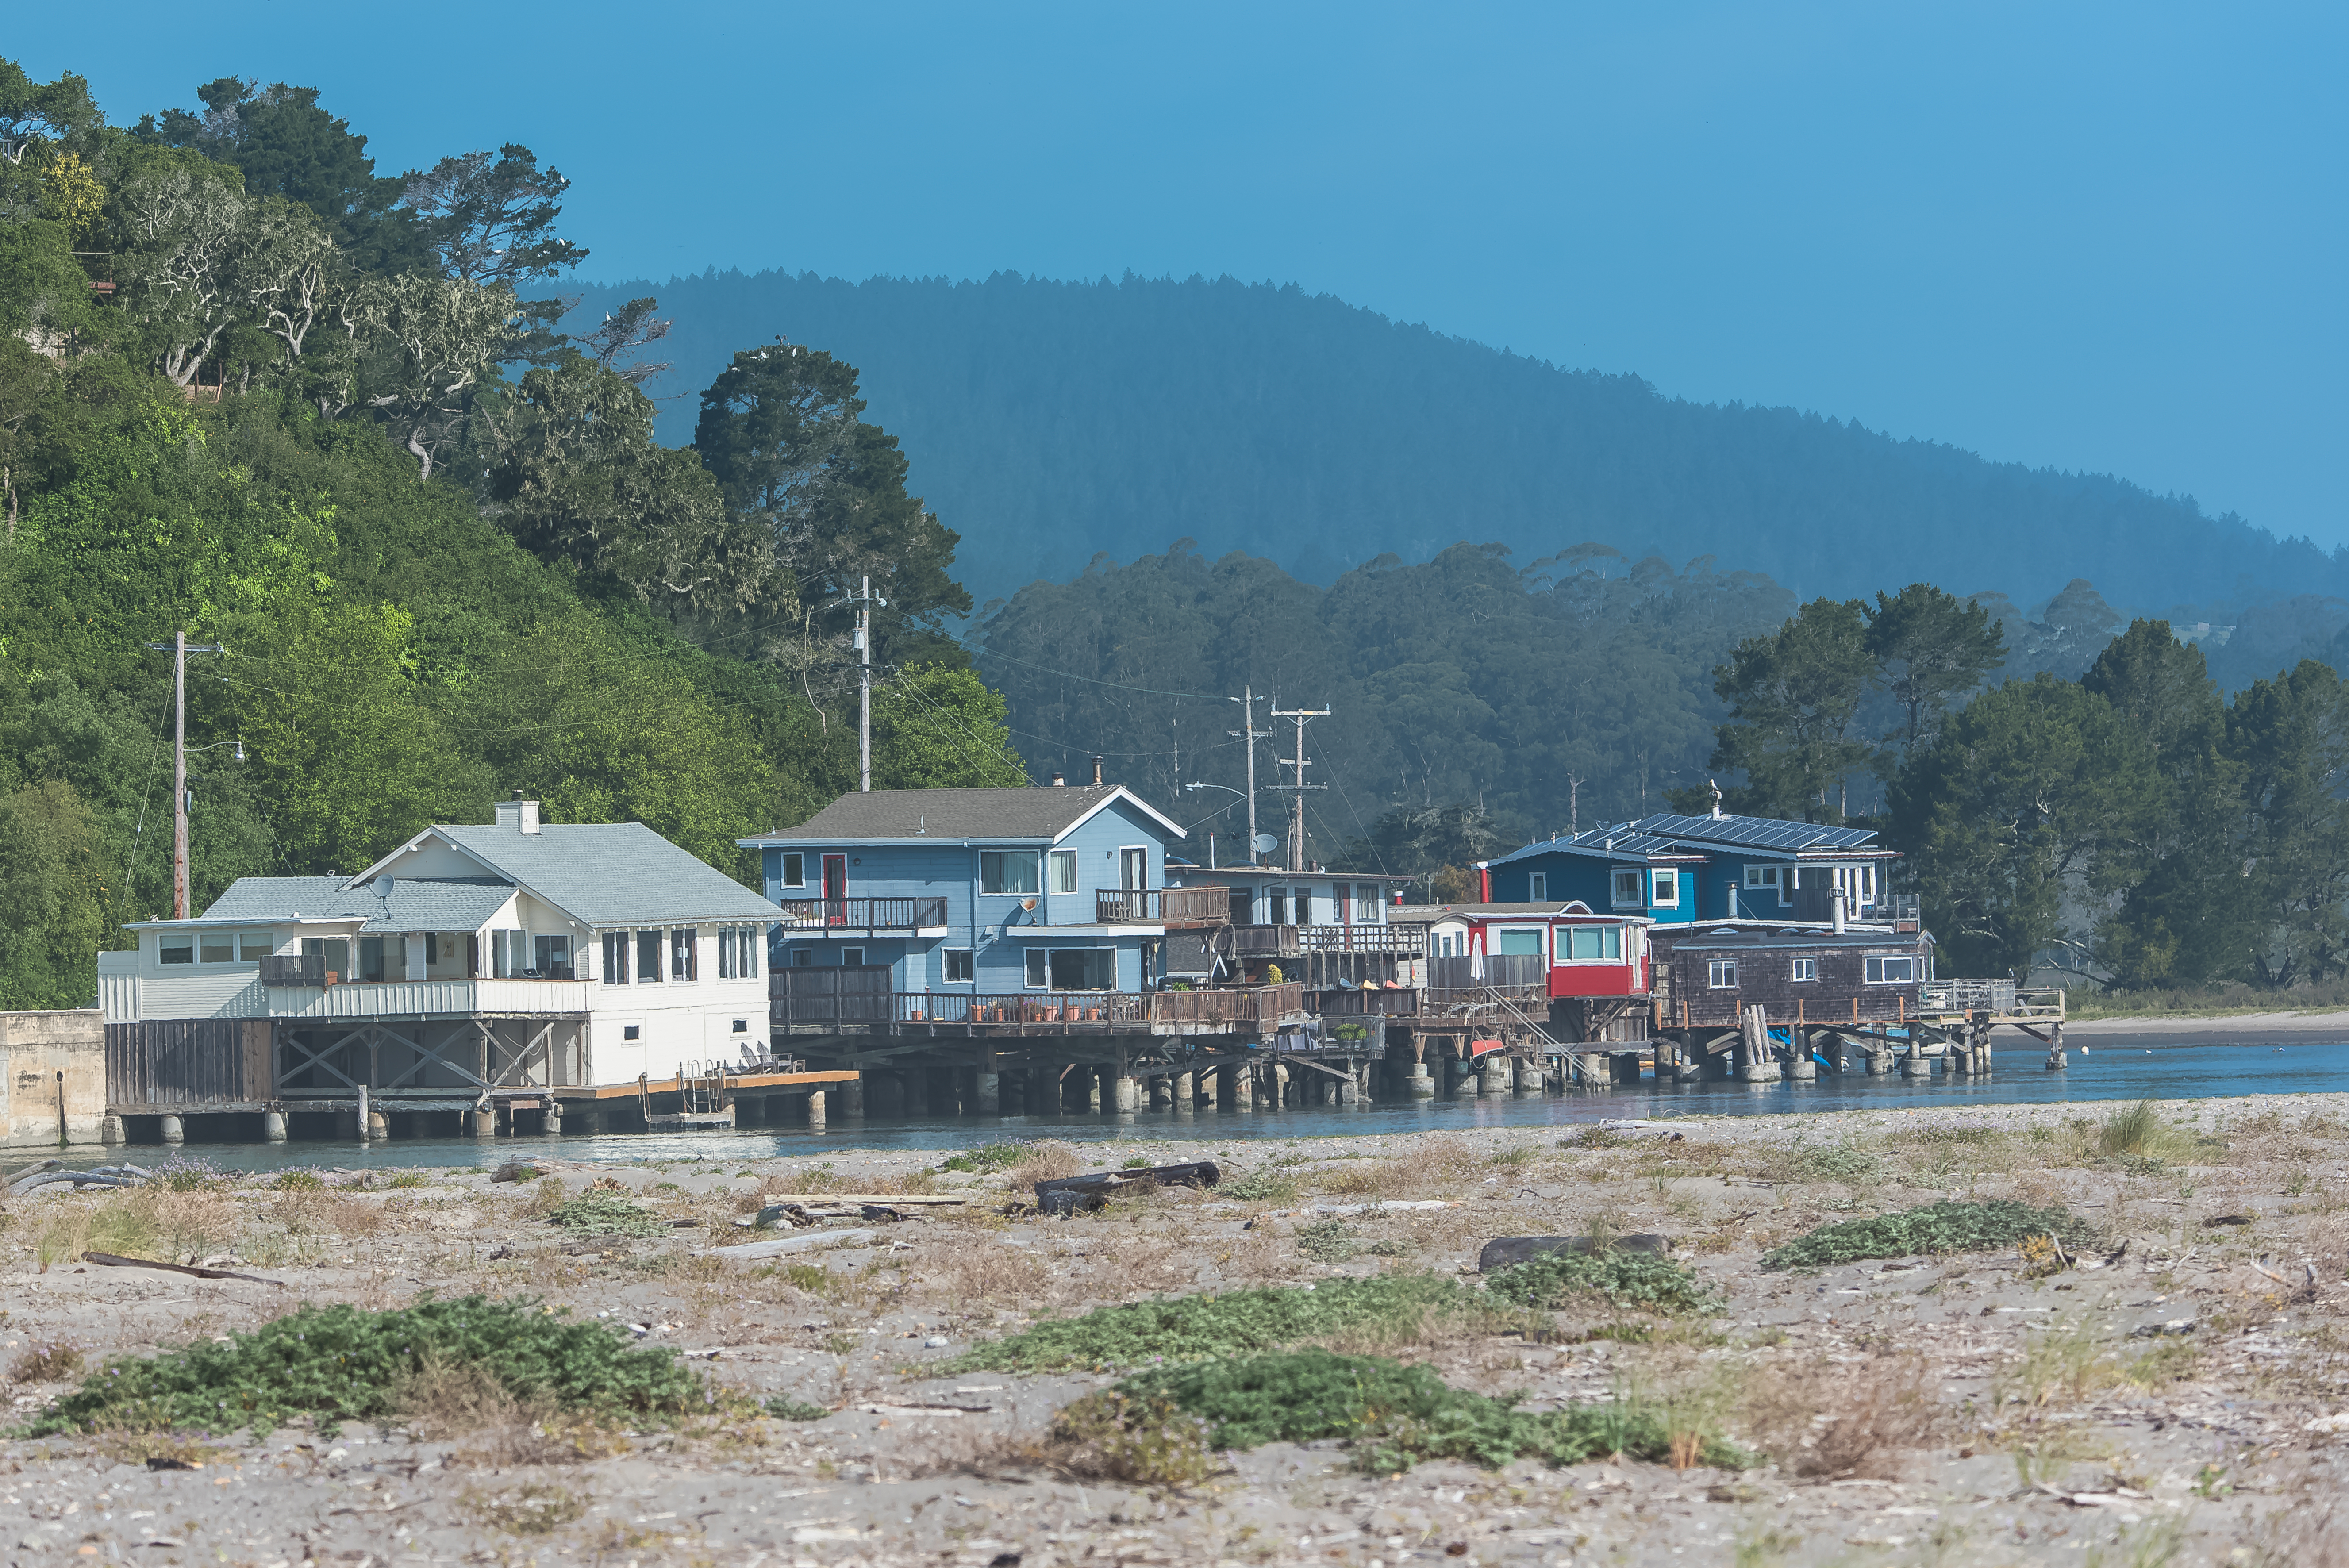 A handful of one- to two-story homes along the beach, with trees and mountainous terrain in the background.